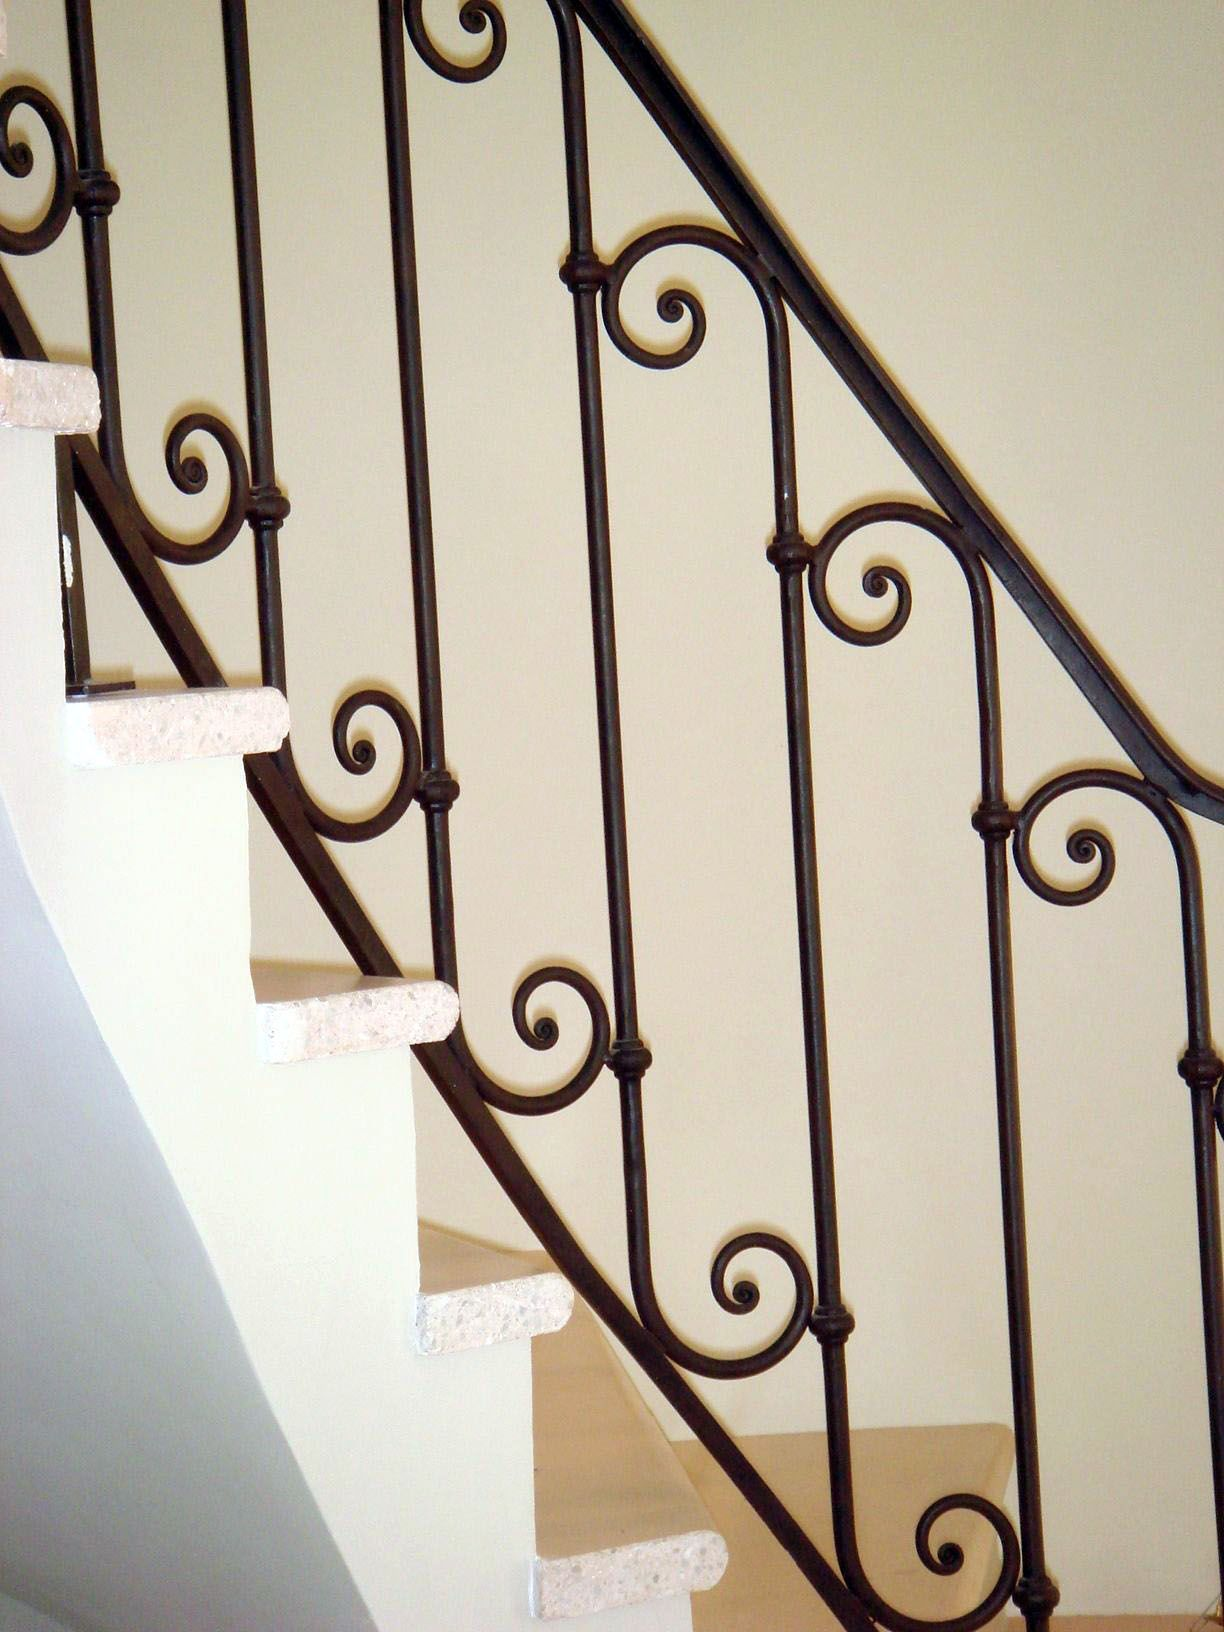 The Next Level 14 Stair Railings To Elevate Your Home Design Wrought Iron Staircase Indoor Stair Railing Stair Railing